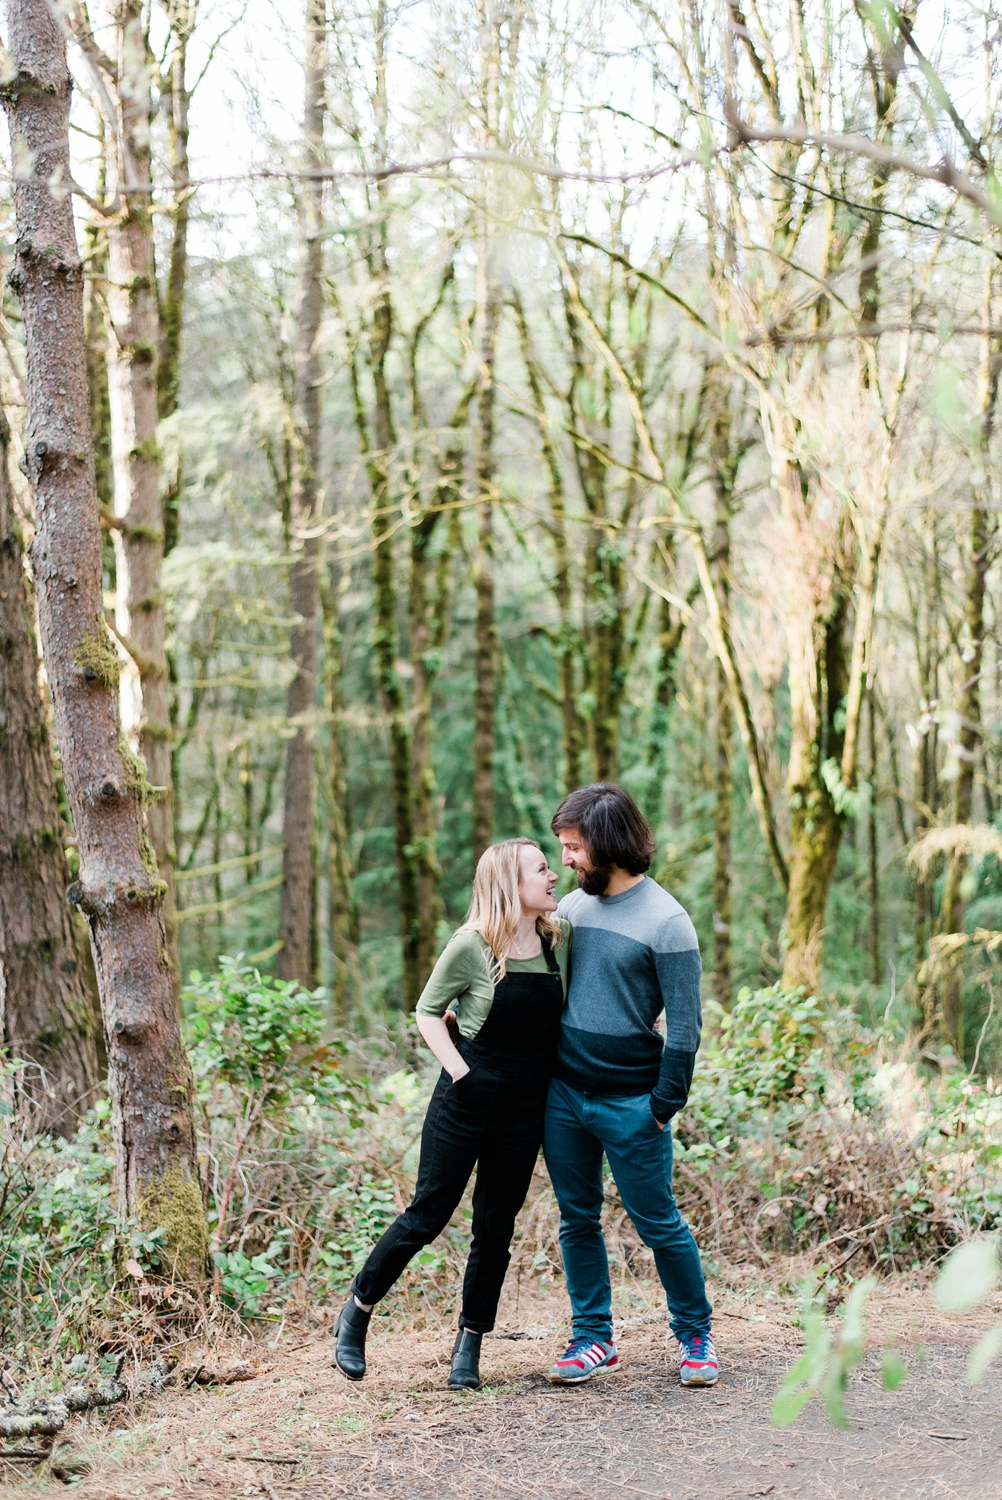 washington-park-portland-engagement-photos-hoyt-arboretum-shelley-marie-photo-104_cr.jpg